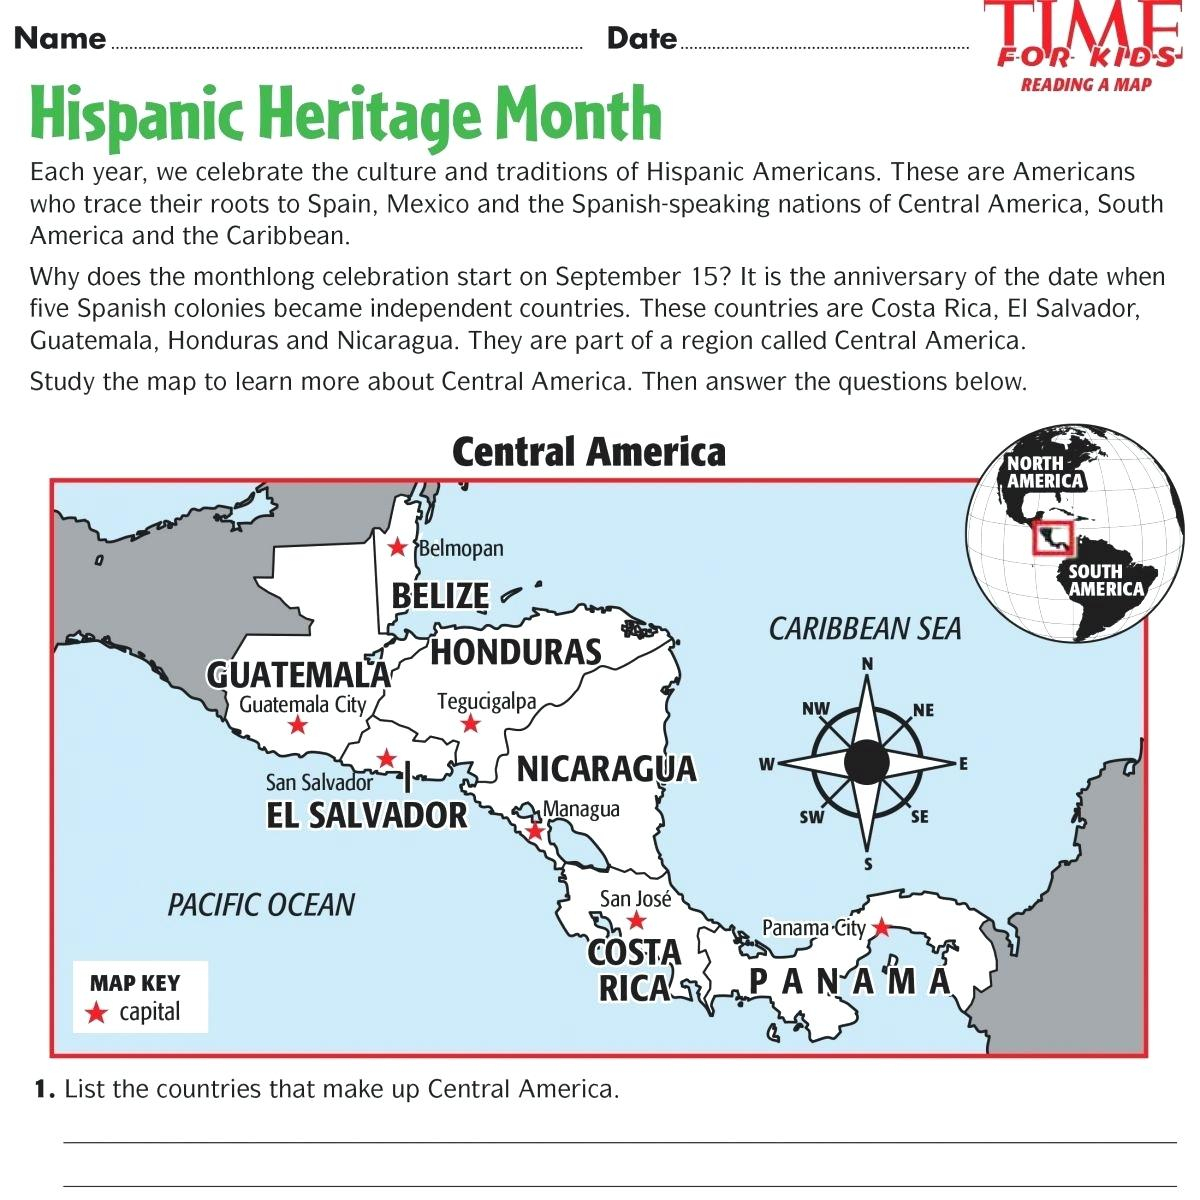 Hispanic Heritage Month Worksheets Heritage Month Poster Hispanic | Hispanic Heritage Month Printable Worksheets